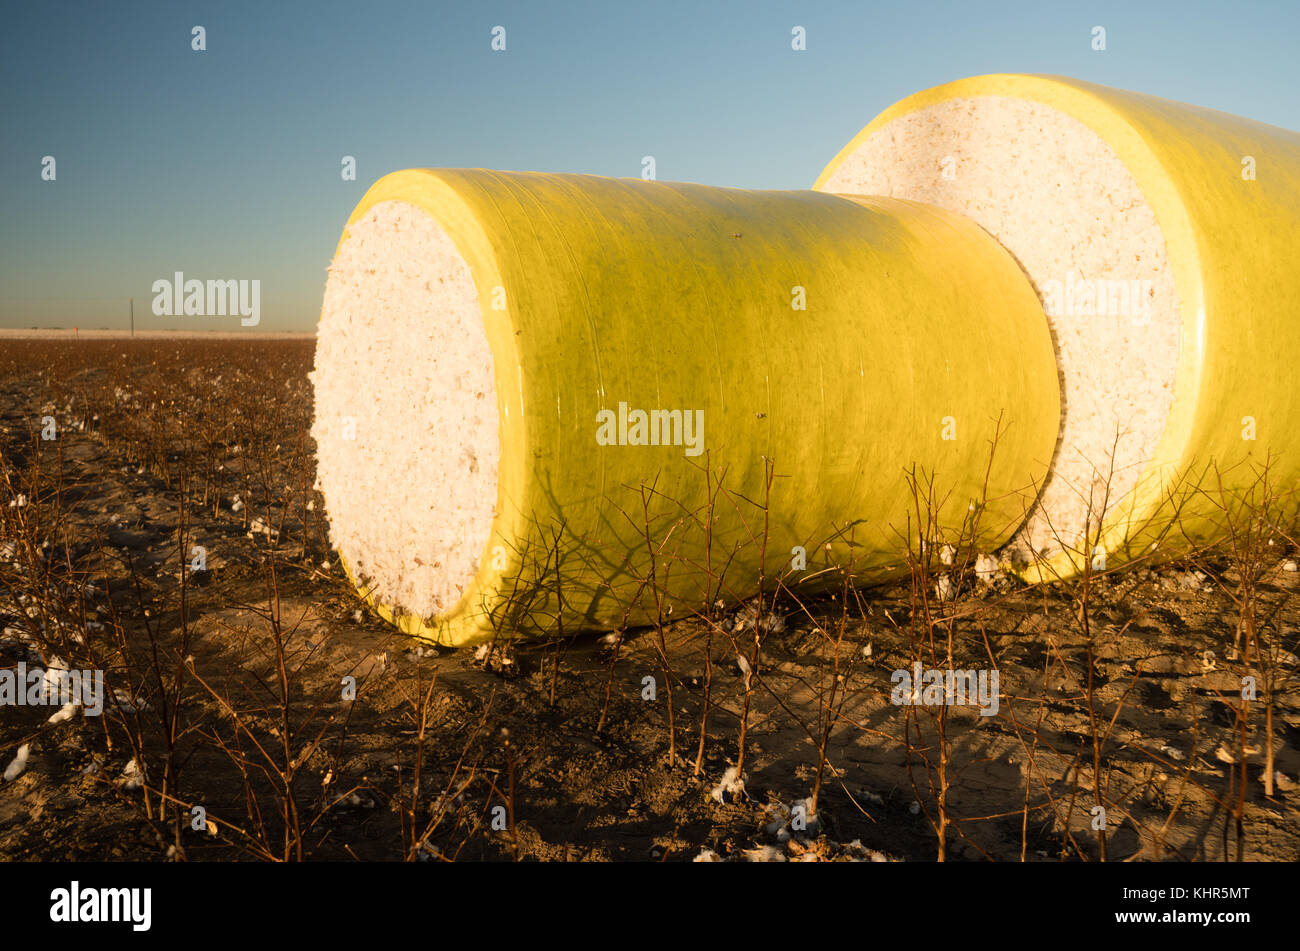 Tarp Covers Fresh Cotton Harvest Farm Field Agriculture - Stock Image